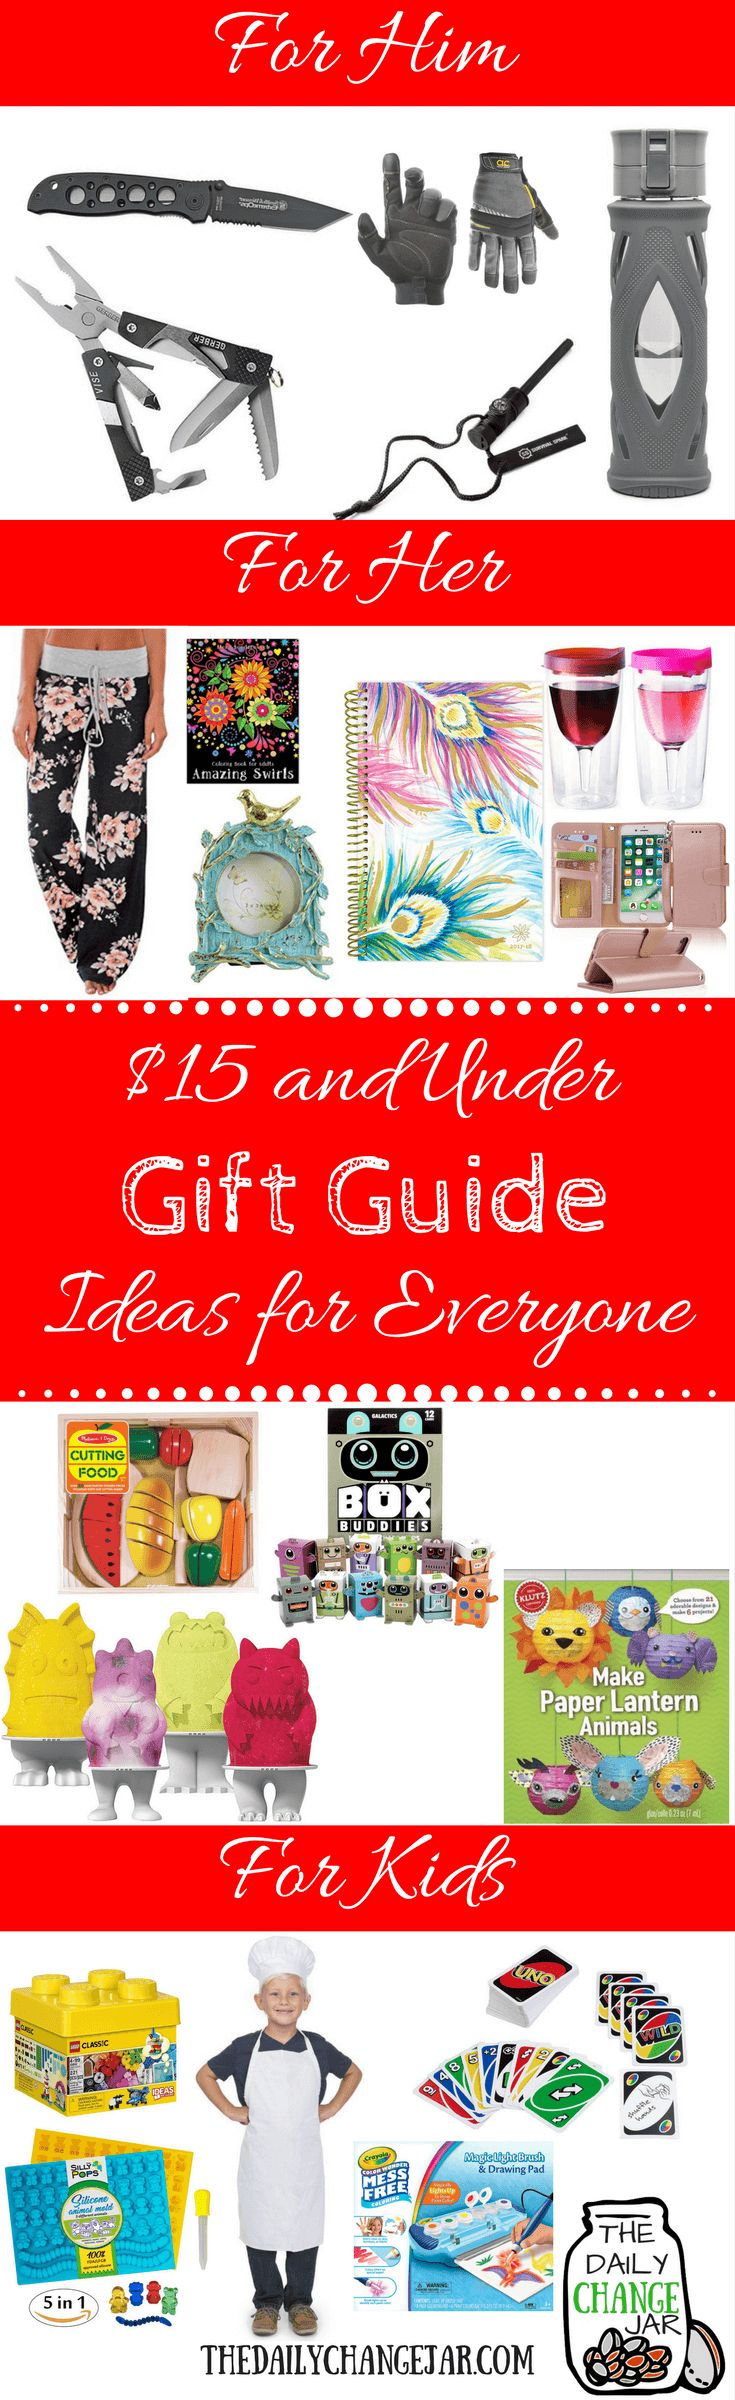 Do you need gift ideas for everyone in your family? Here is a list of 50 gift ideas for $15 or less for him, her, and the kids. Click the image to check out the list of 50 gift ideas for everyone on your list! gift guides, for him, 2016, holiday, favorite things, teenager, 2017, christmas, for her, kids, women, for girls, mom, email, under $25, design, dad, best firiend, sister, grandma, for teens, birthday, preppy, editorial, magazine, layout, mens, for parents, travel, college, boys…